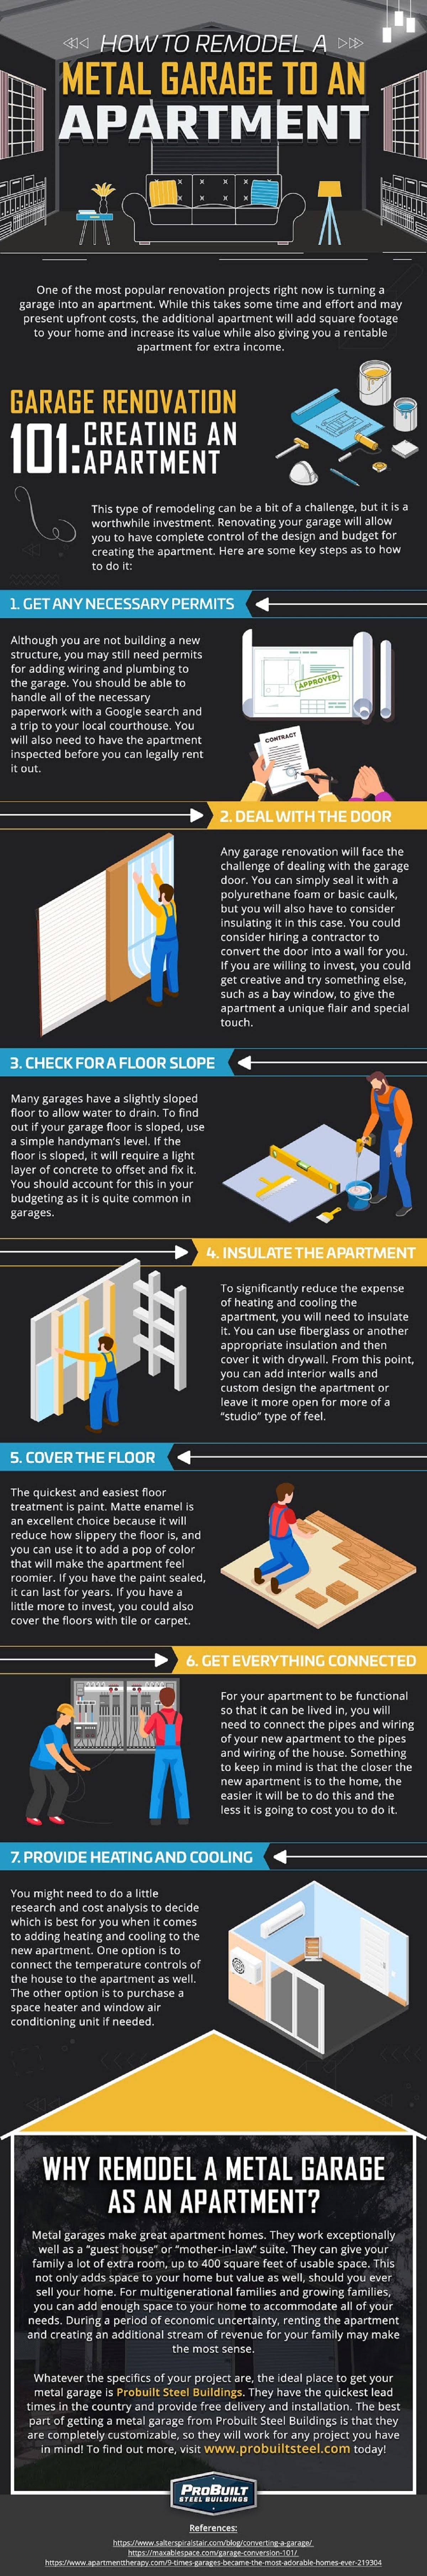 how-to-remodel-a-metal-garage-to-an-apartment-infographic